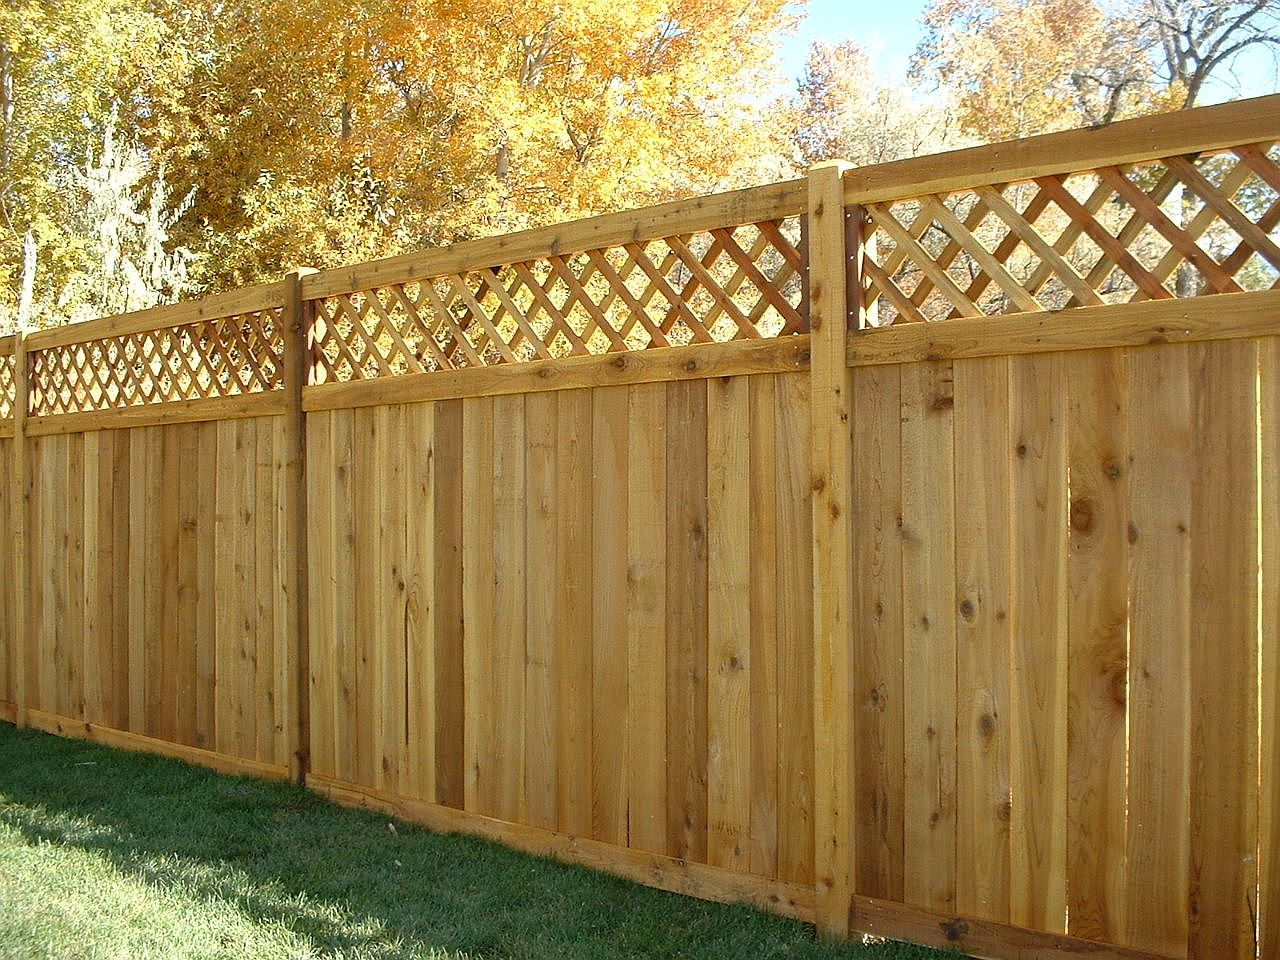 50 Awesome Wood Fence Designs And Ideas Images In 2020 Wood Privacy Fence Wood Fence Design Fence With Lattice Top